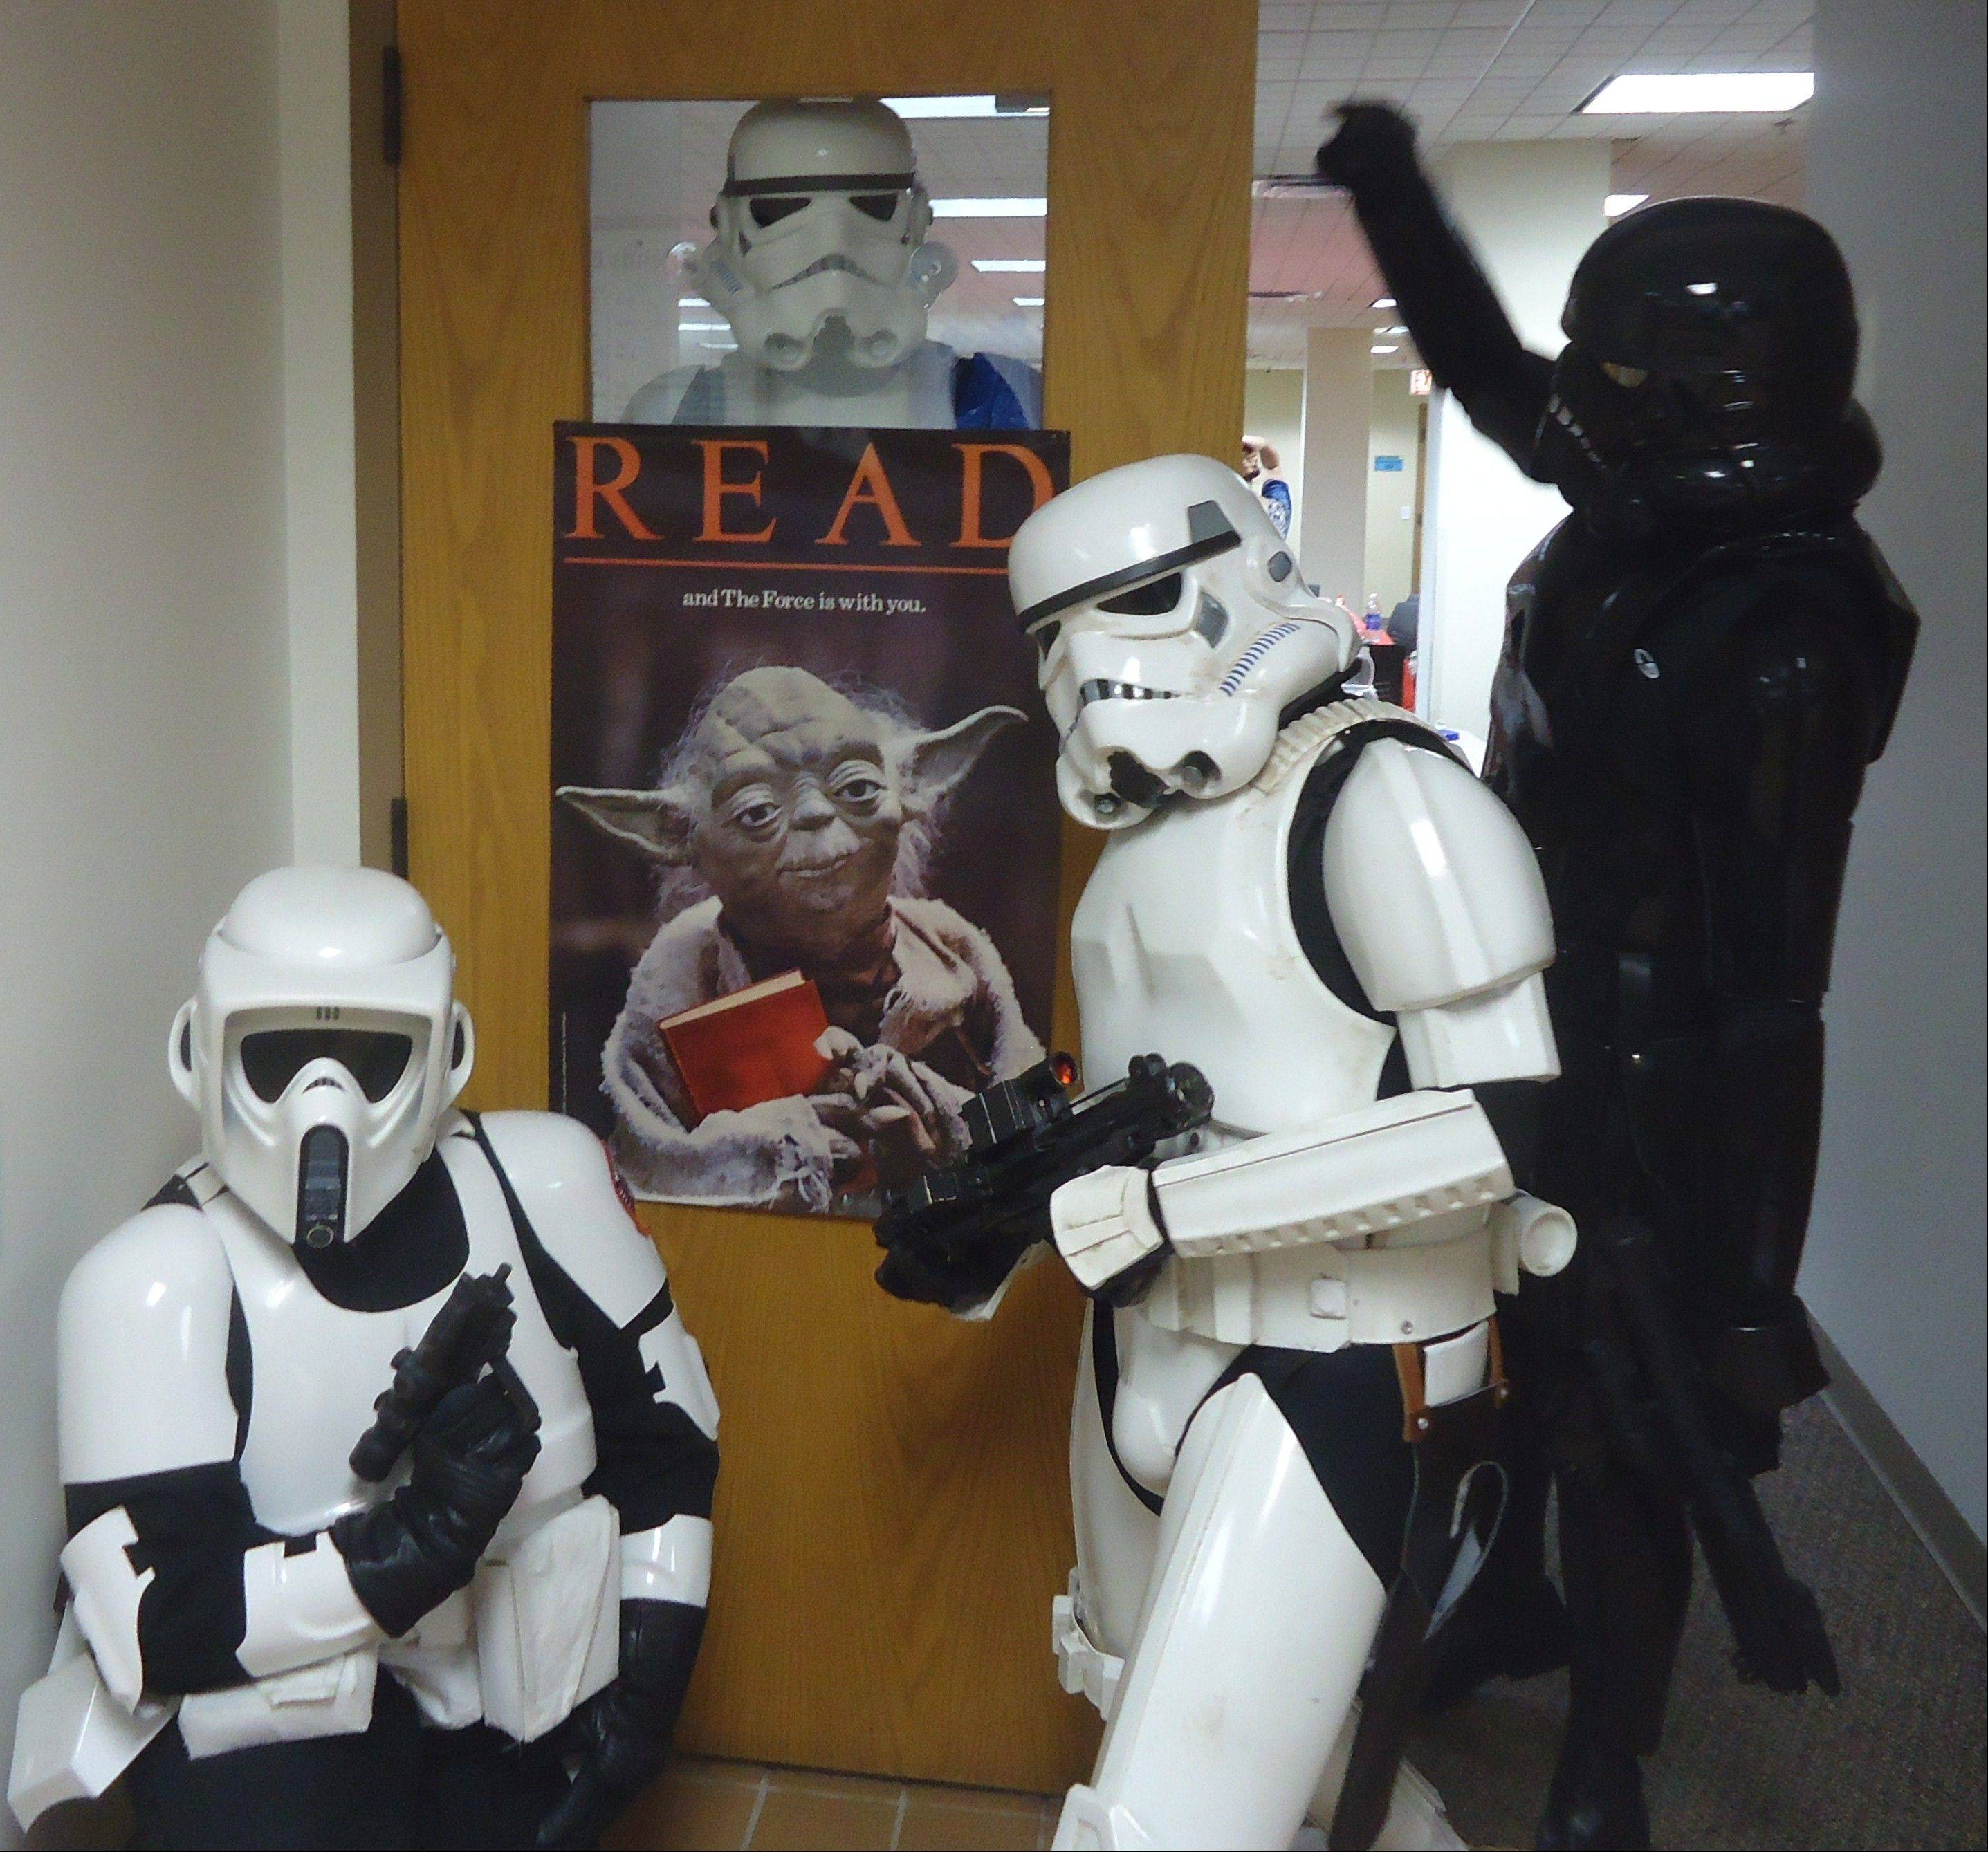 Members of the 501st Midwest Garrison Legion arrive to talk with the guests and pose for photos.